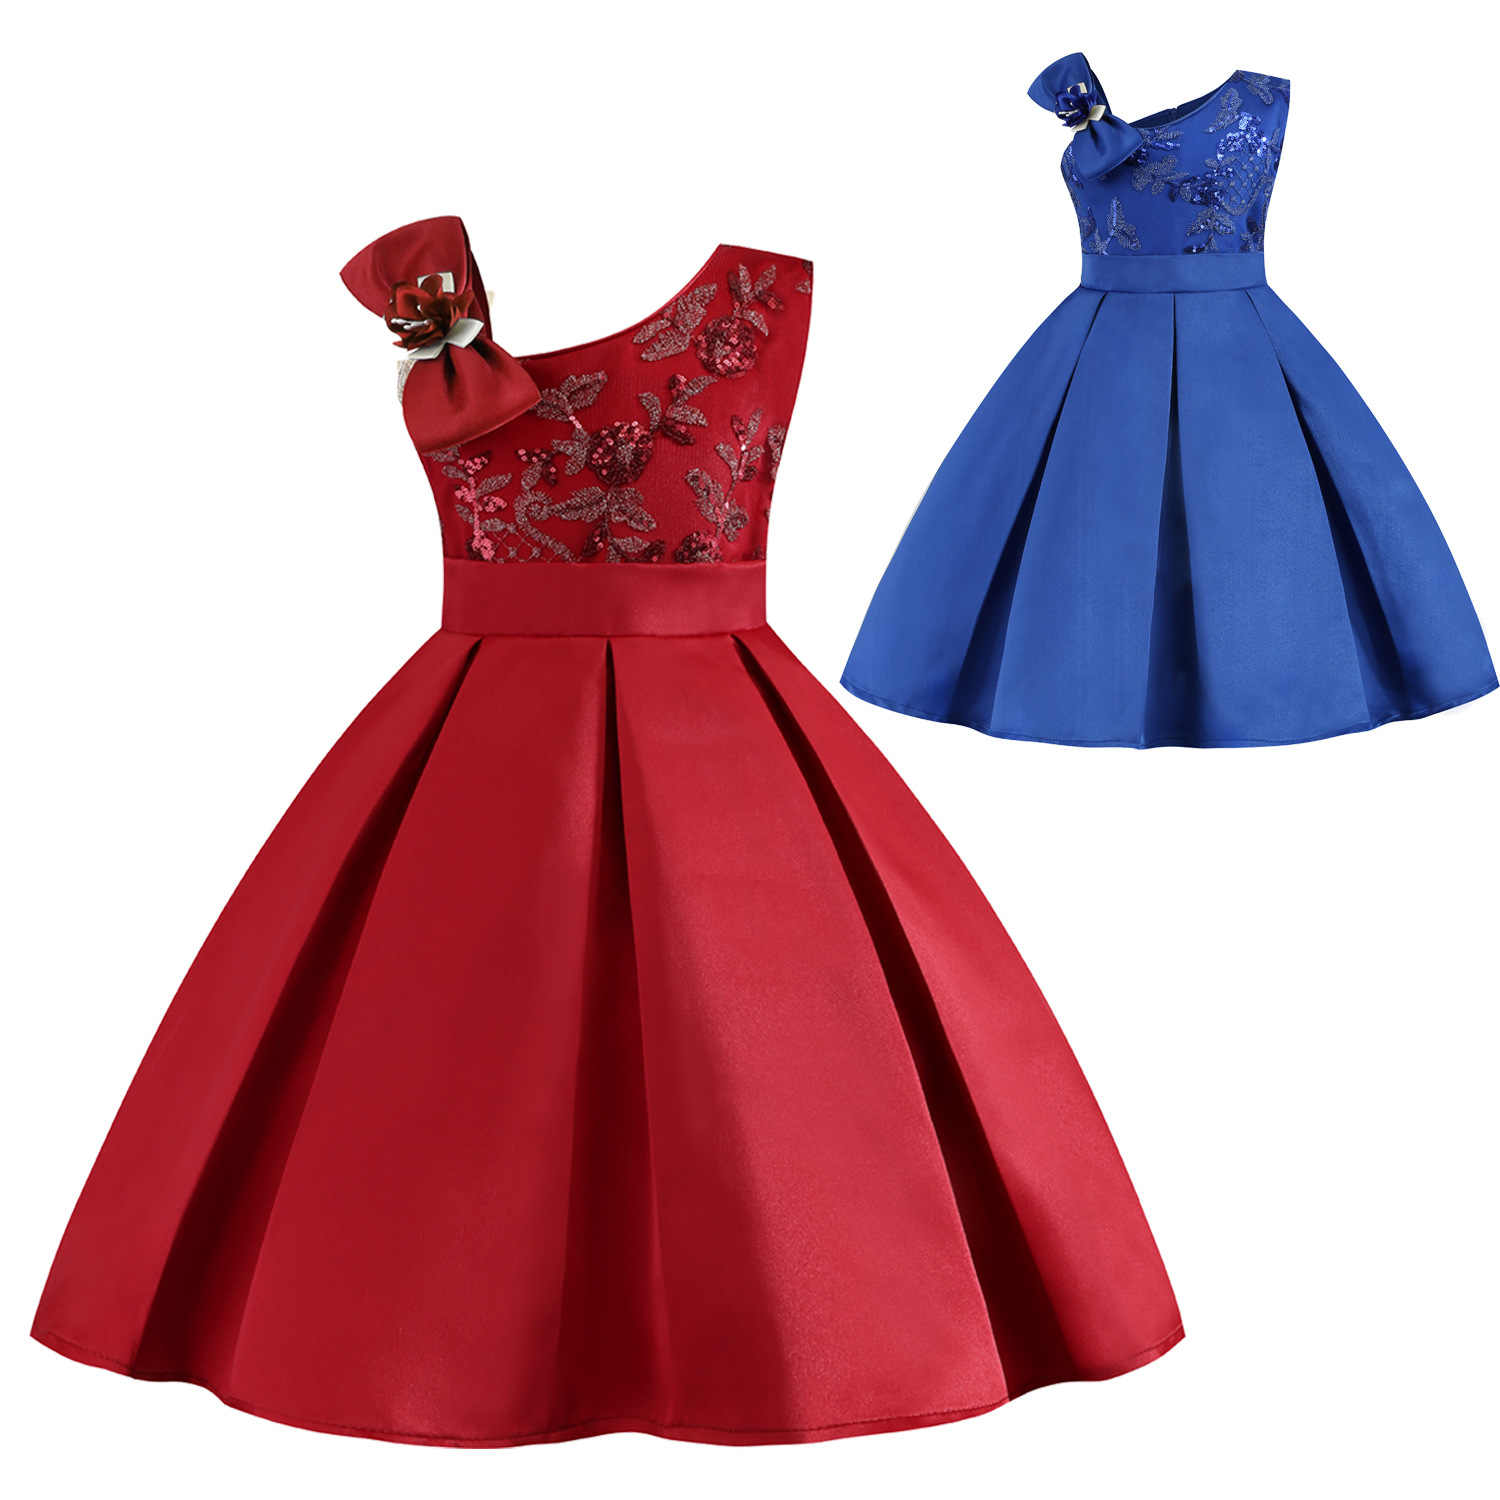 Girls Dresses 20 Flower Girl Wedding Dress Formal Dresses for Party 20 20  Years Kid's Baby Sleeveless Birthday Princess Clothes